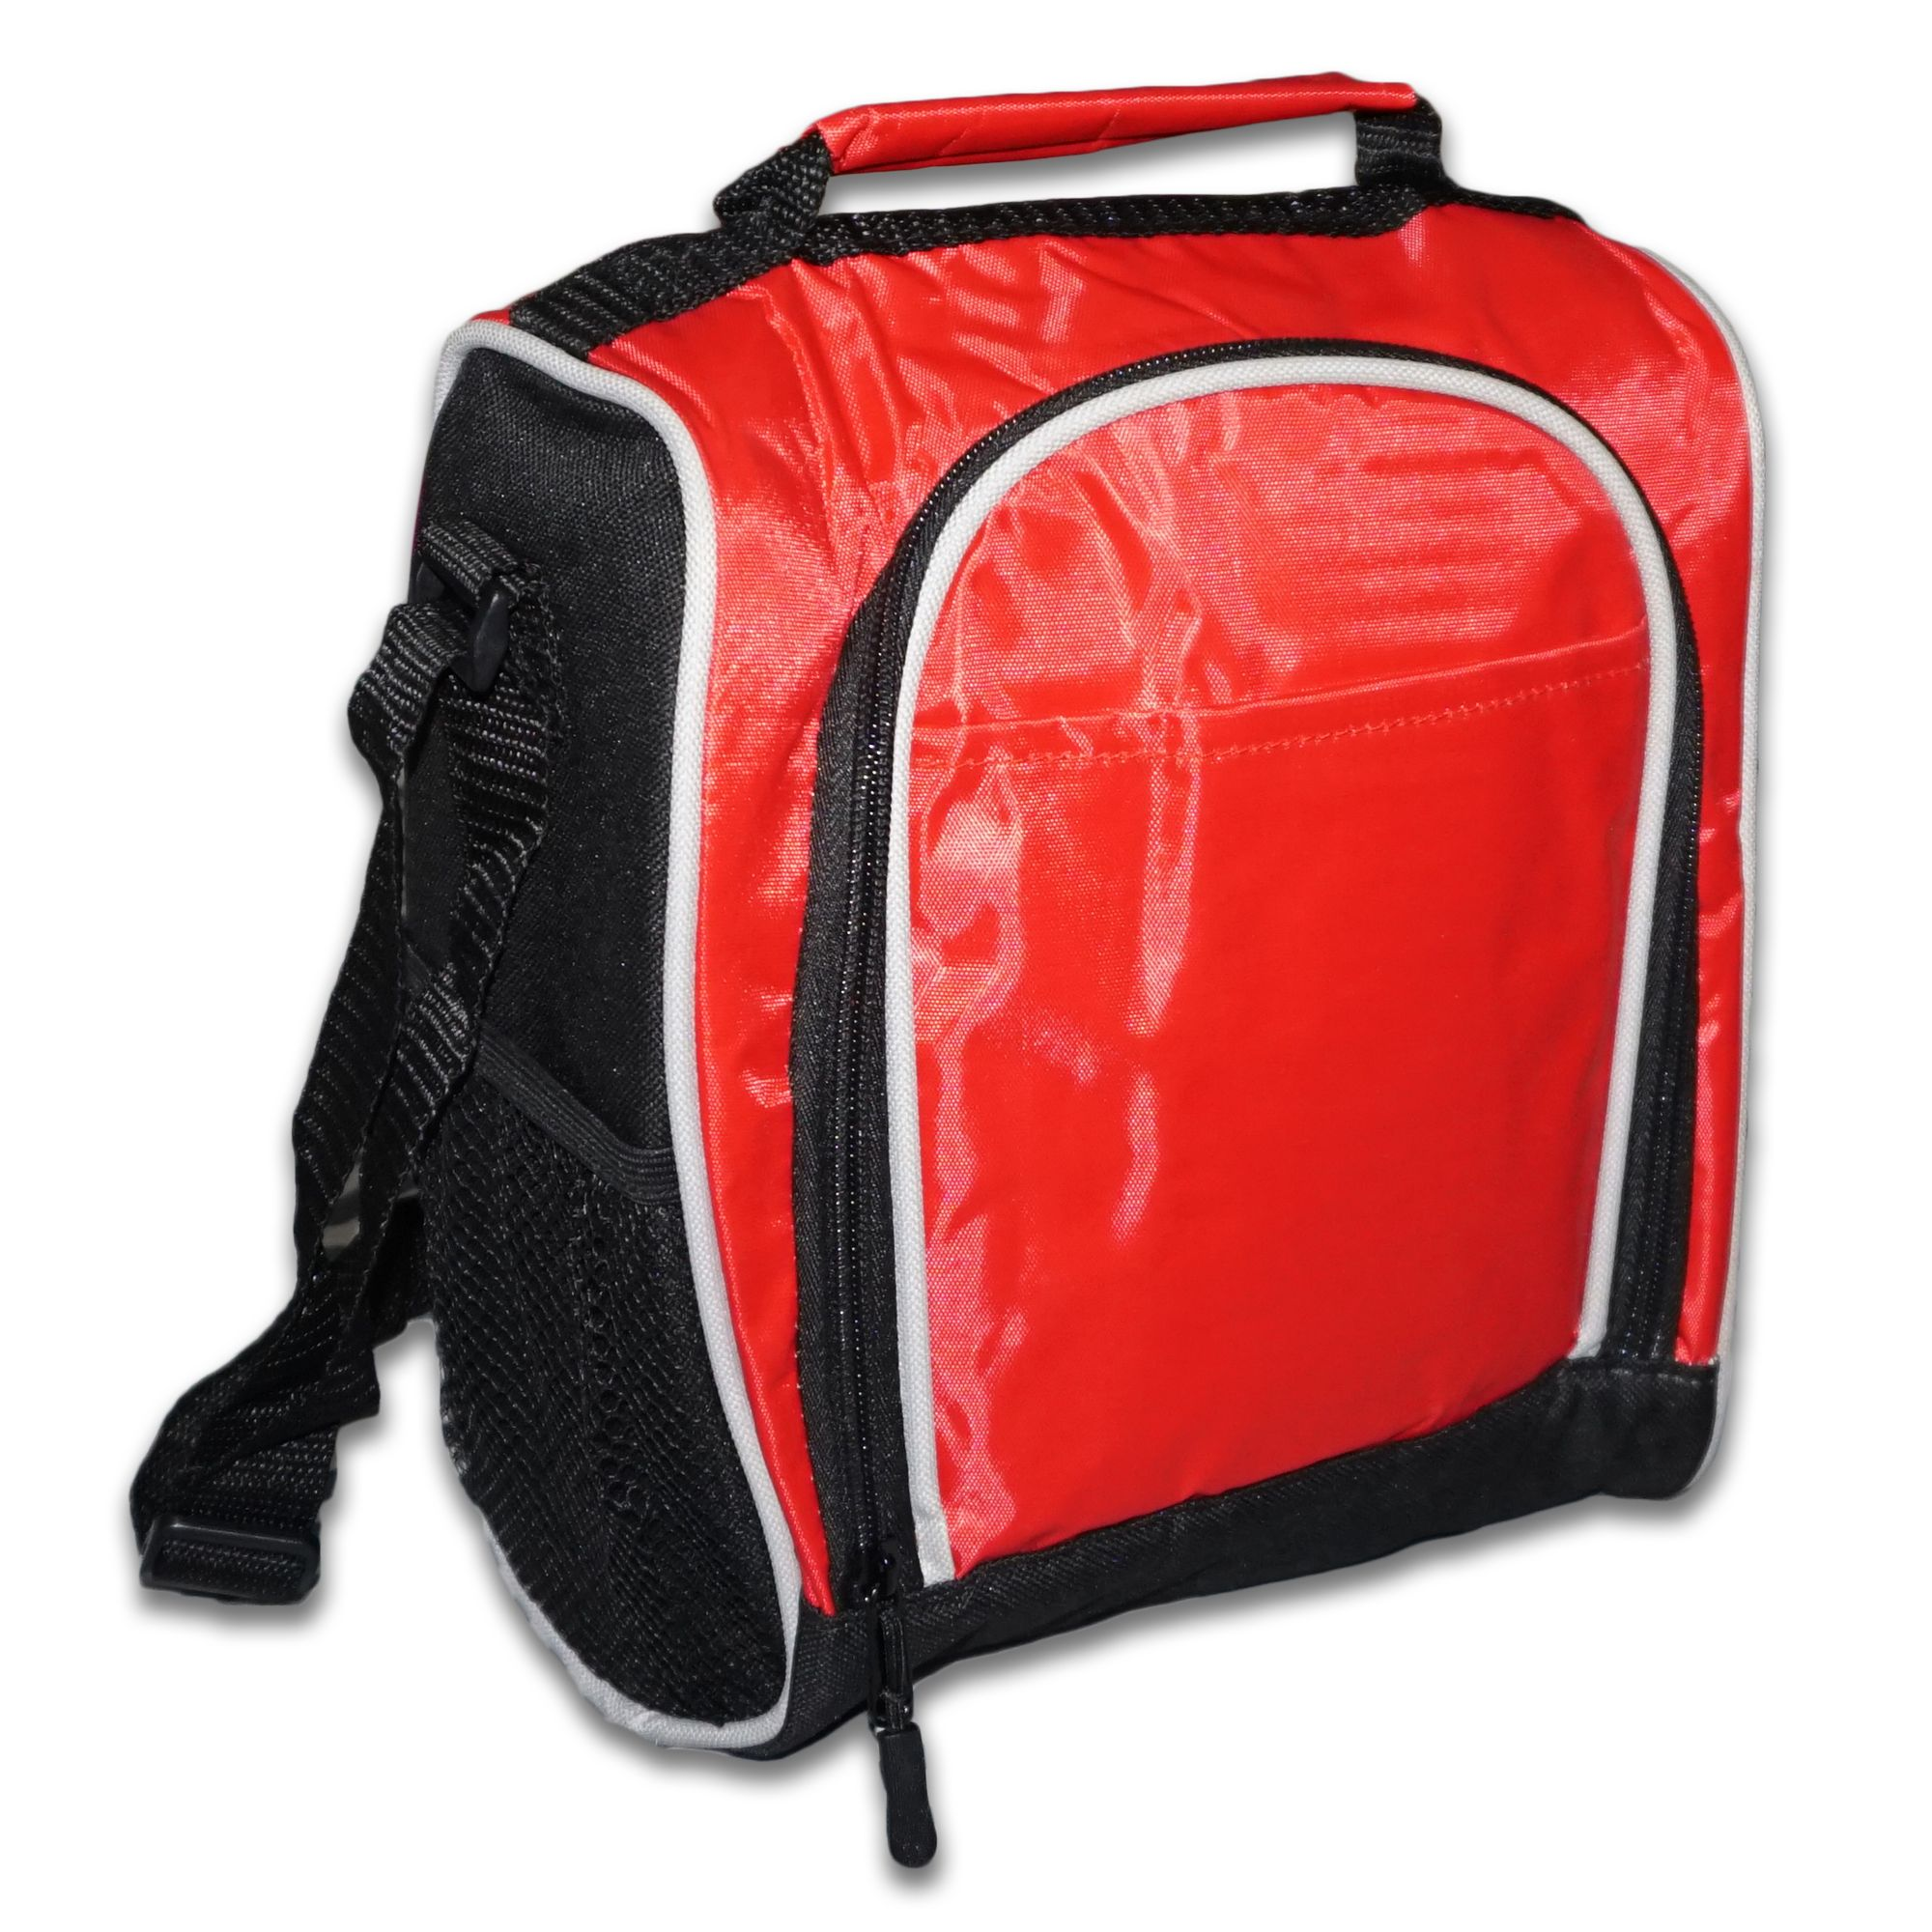 Small Insulated Lunch Bag 13 X 8 5 X 1 Inches Lunch Bag Portable Bag Bags